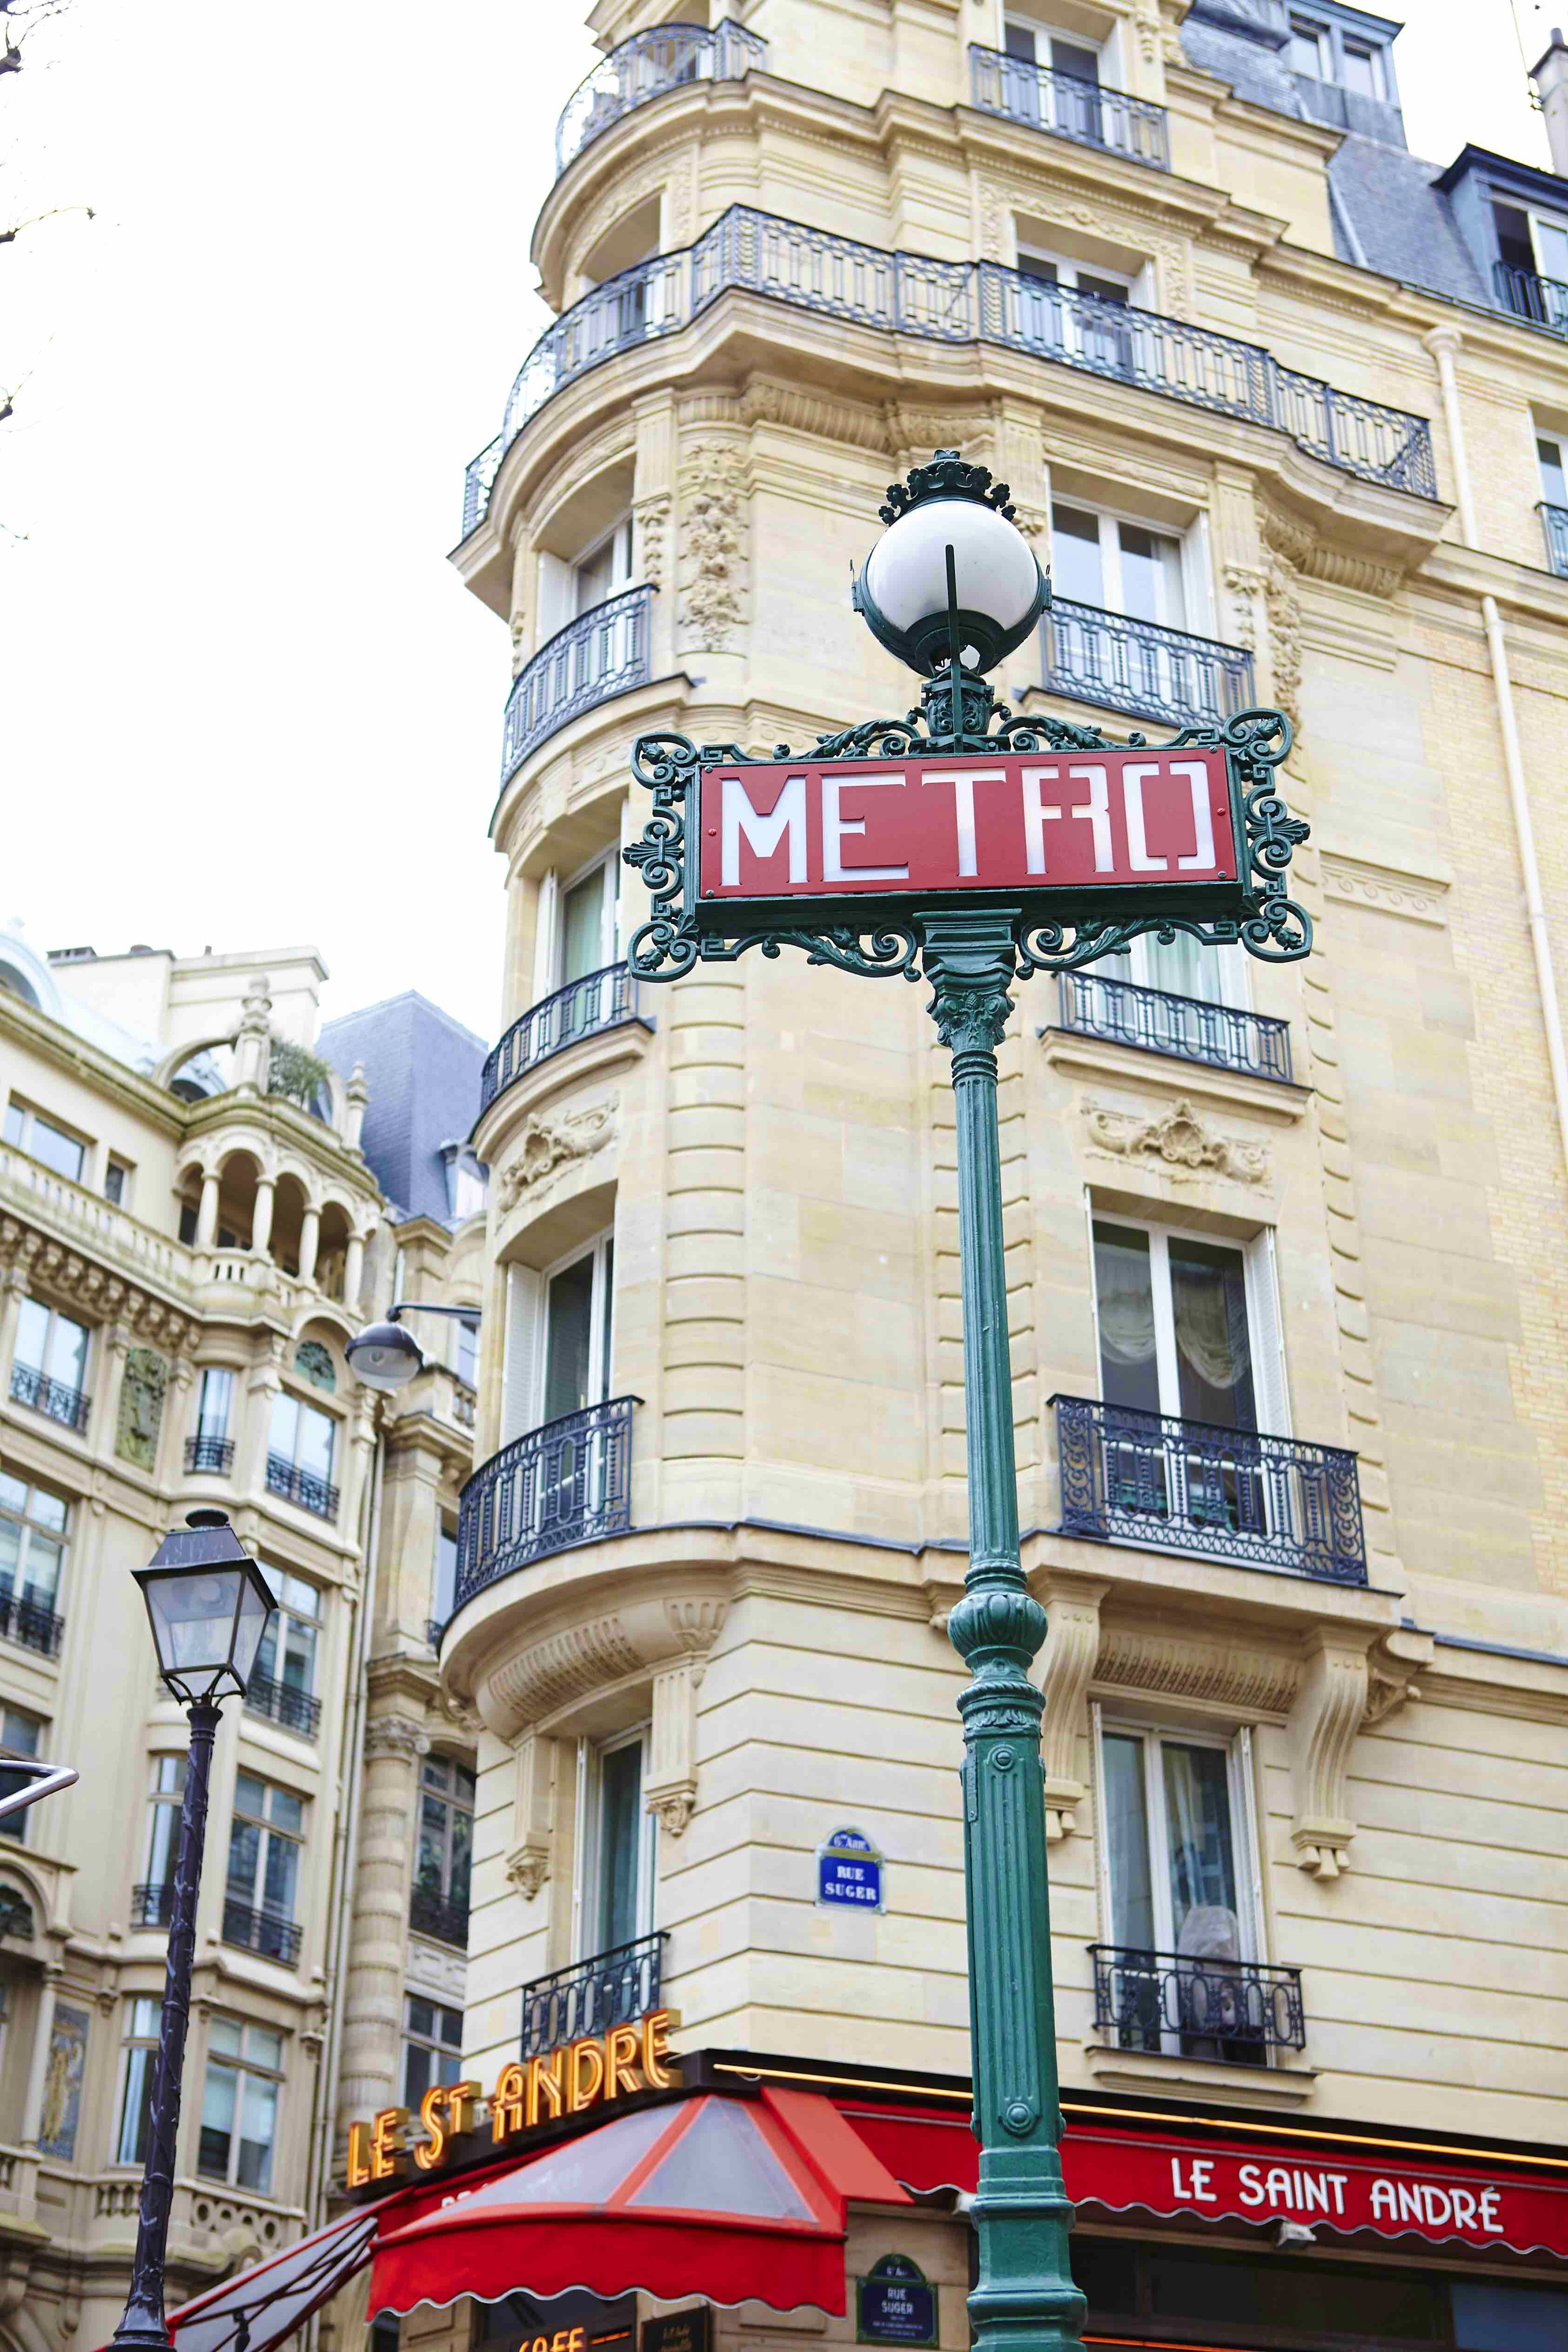 Travel News - Metro sign on corner of Rue Seger with Le Saint Andre in background.